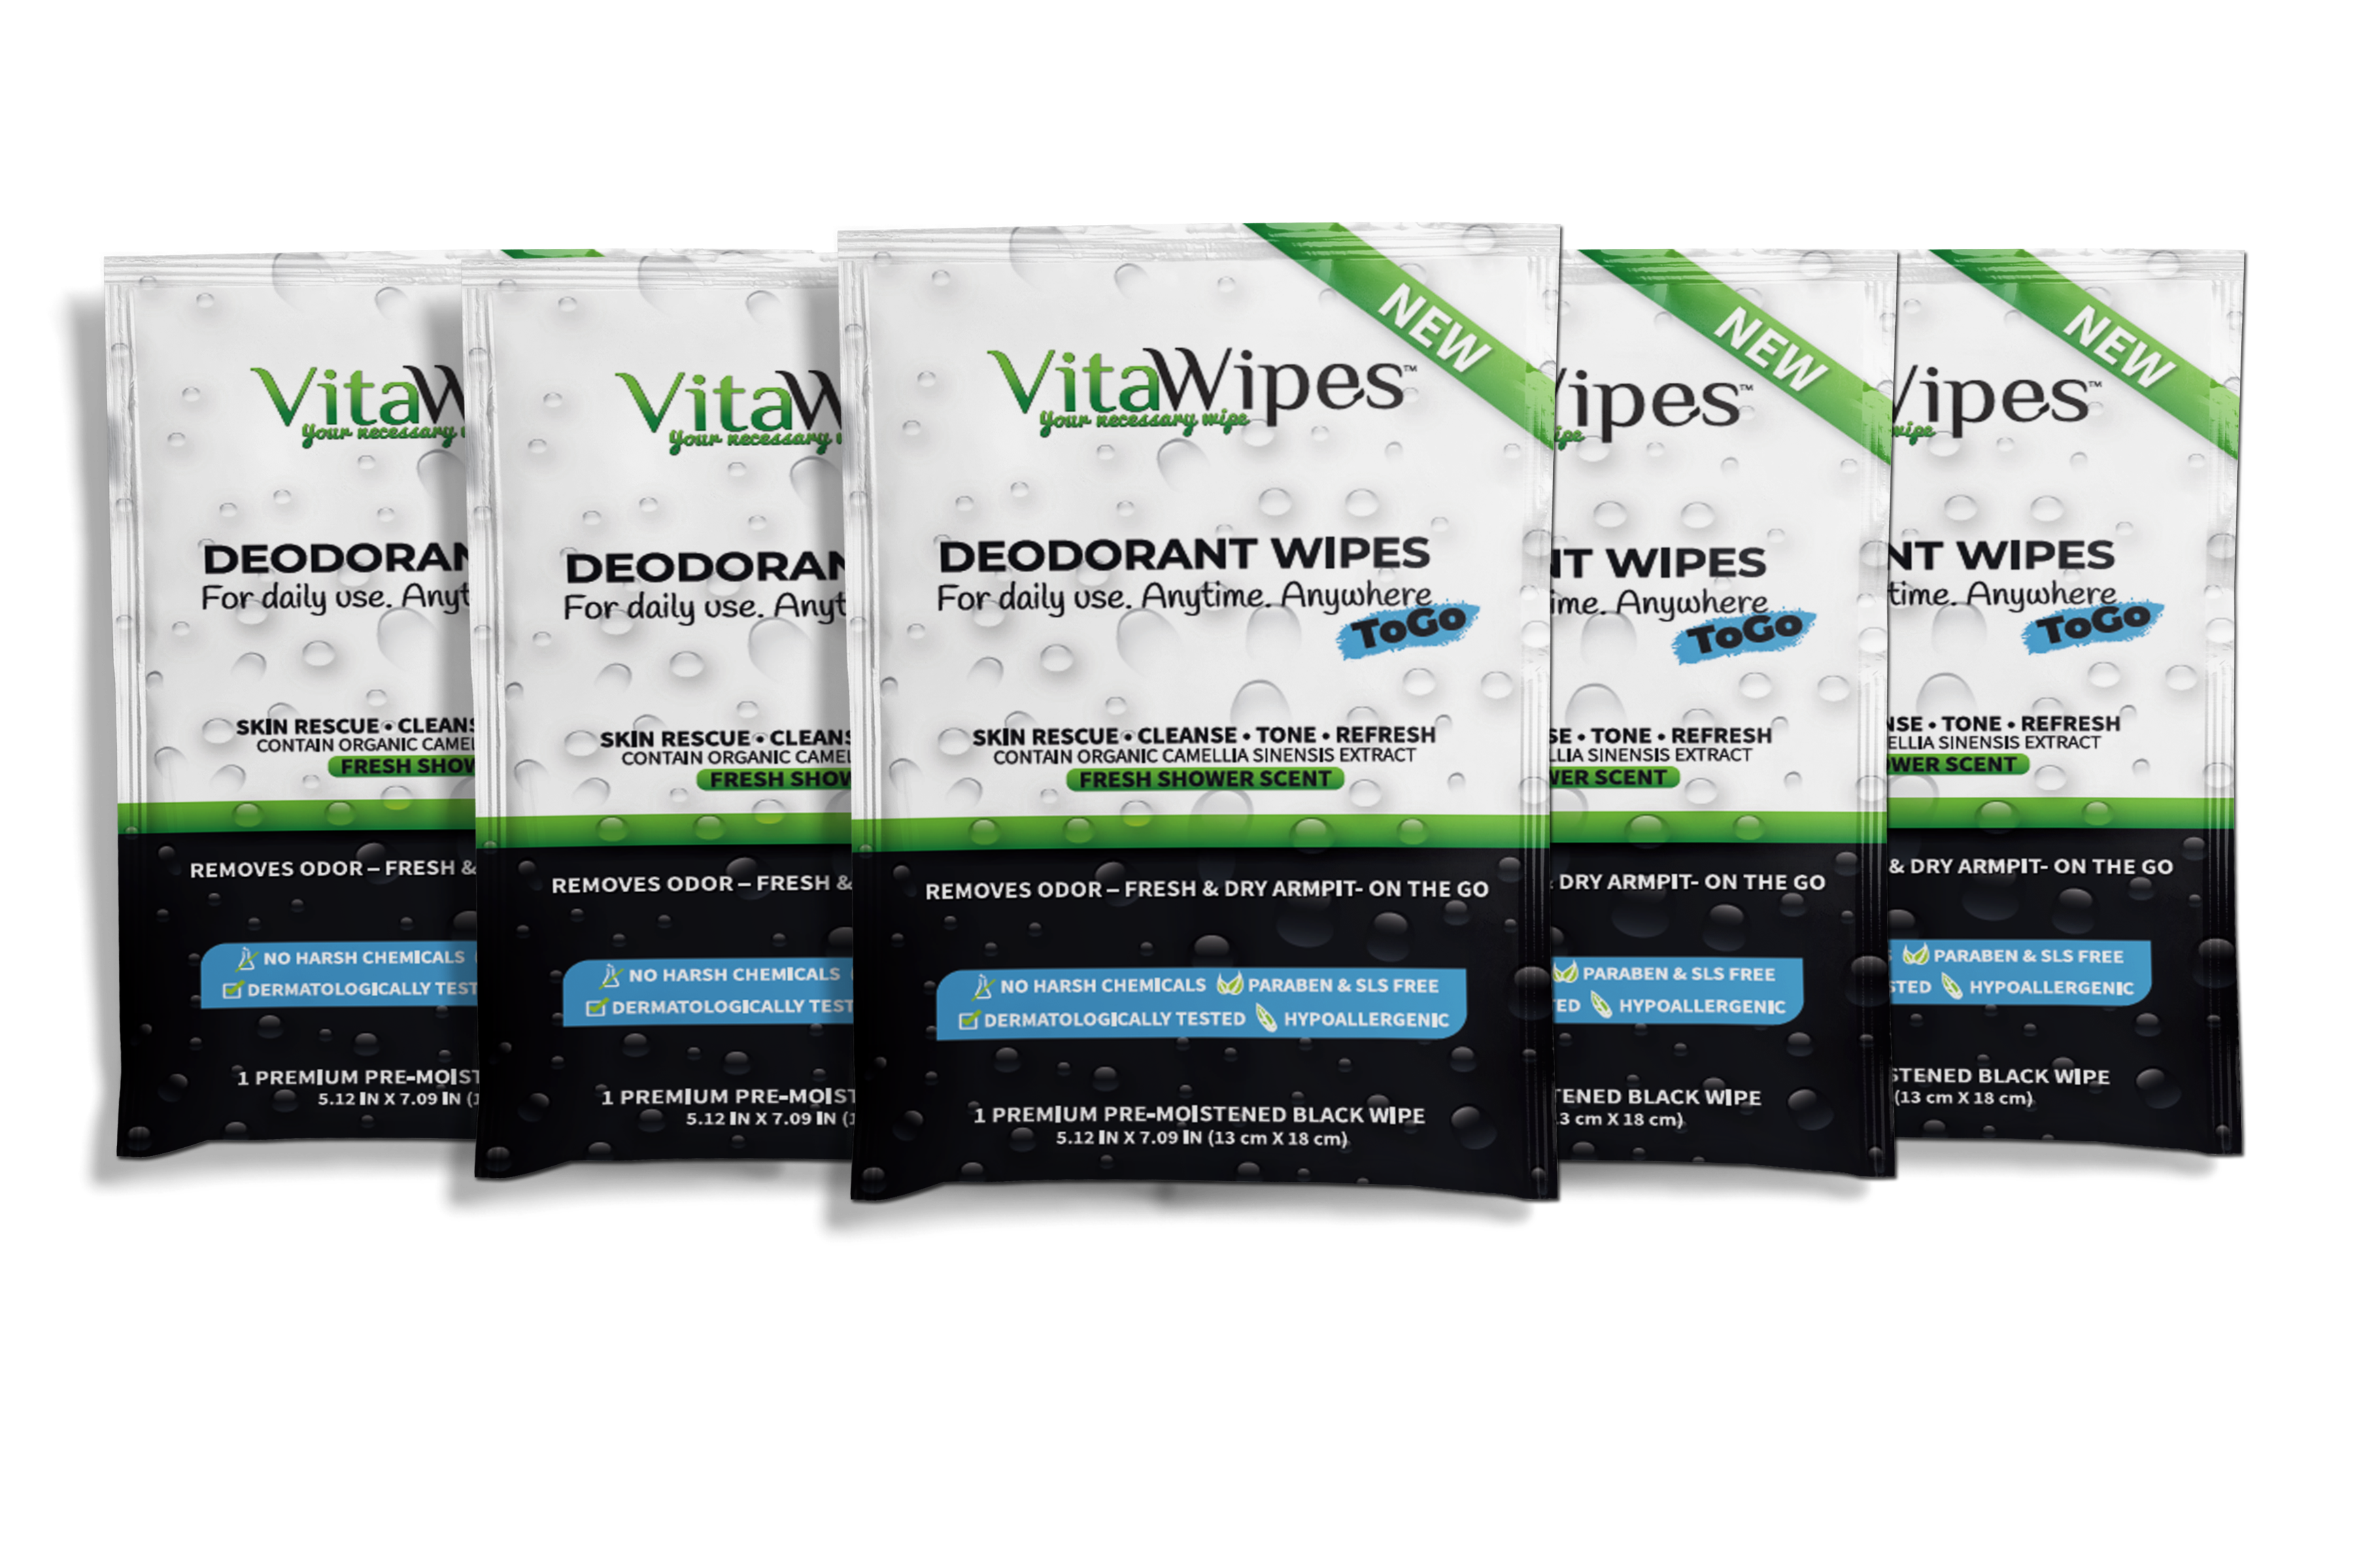 DEODORANT WIPES vitawipes